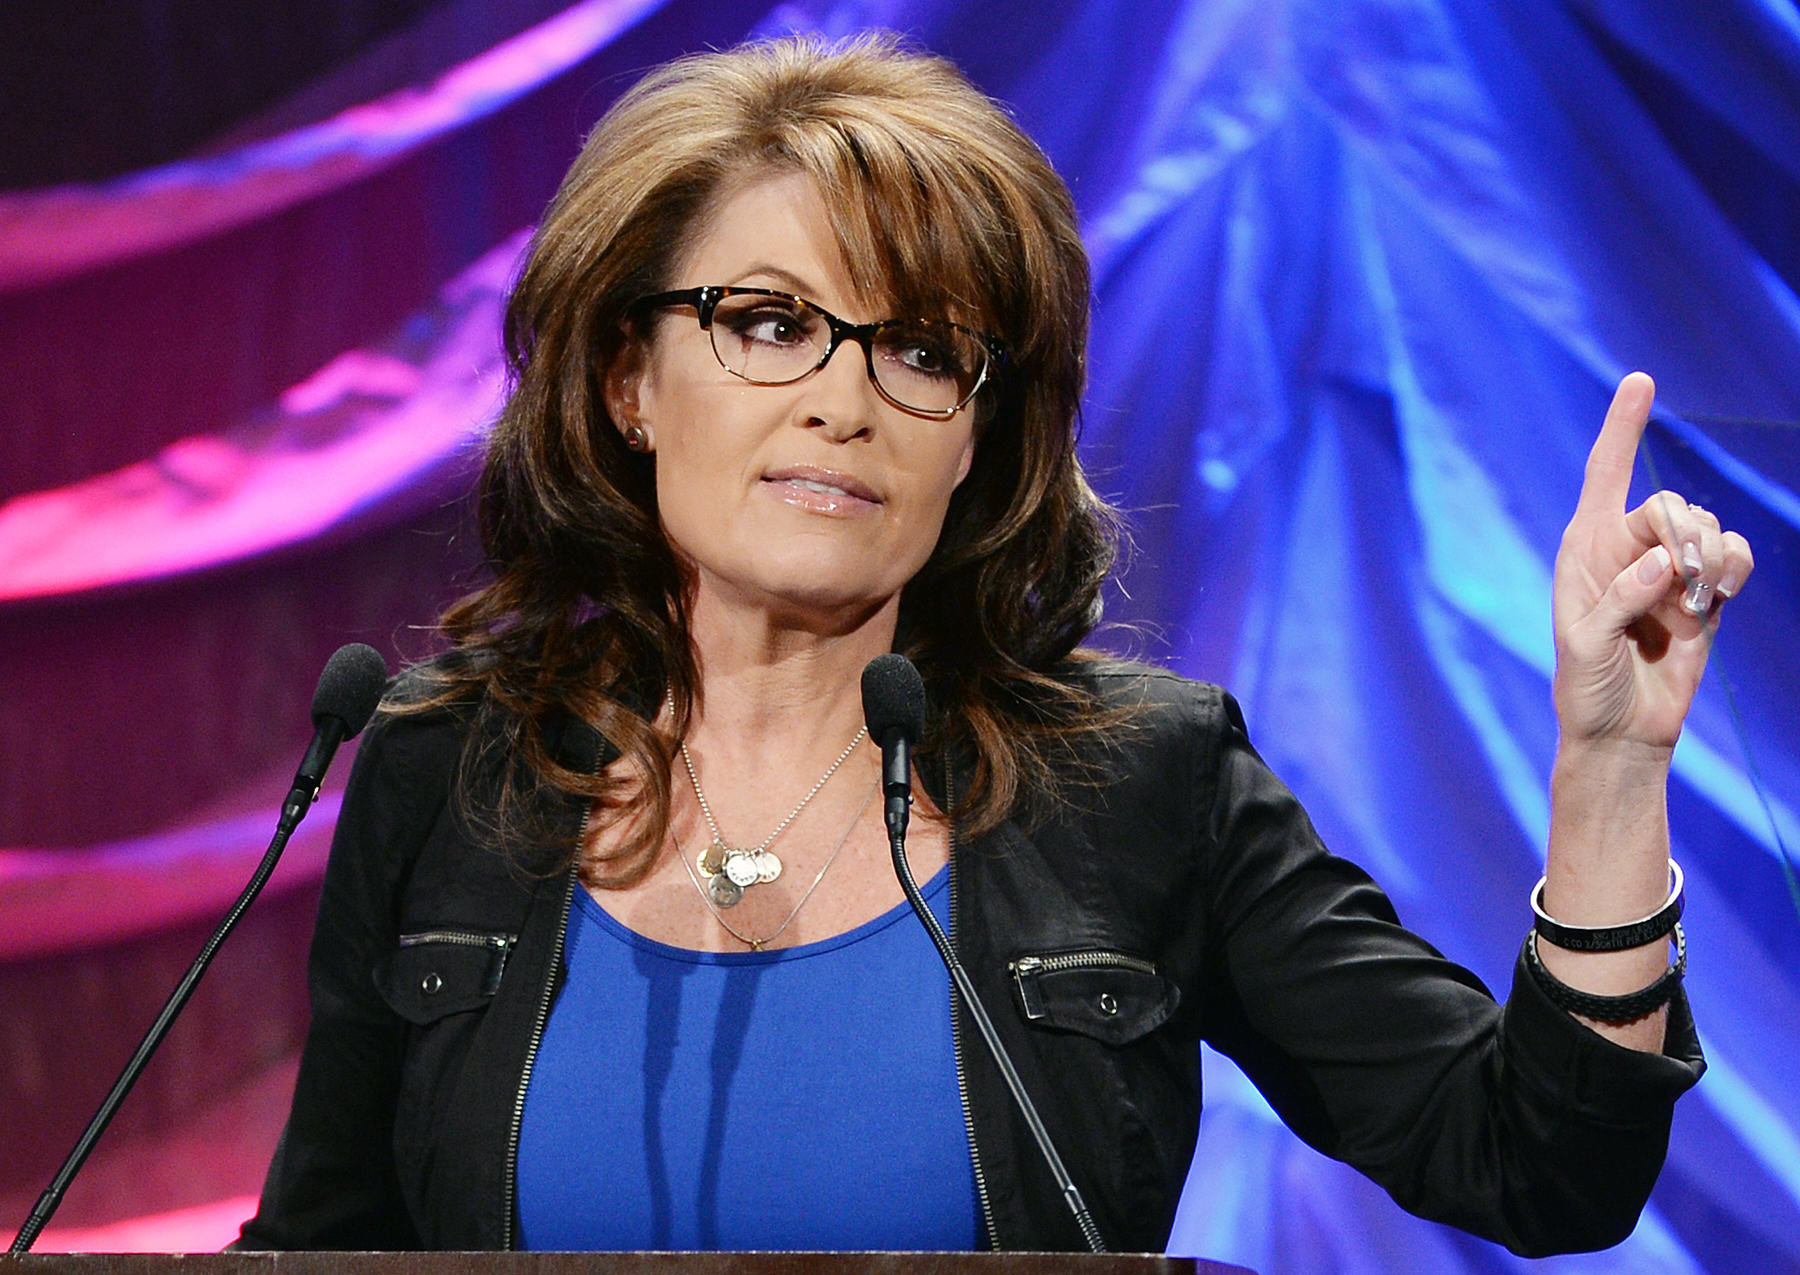 UNILAD palin ahmed 18 Sarah Palin Claims Arrested Muslim Schoolboy Ahmed Mohamed Is Not Innocent